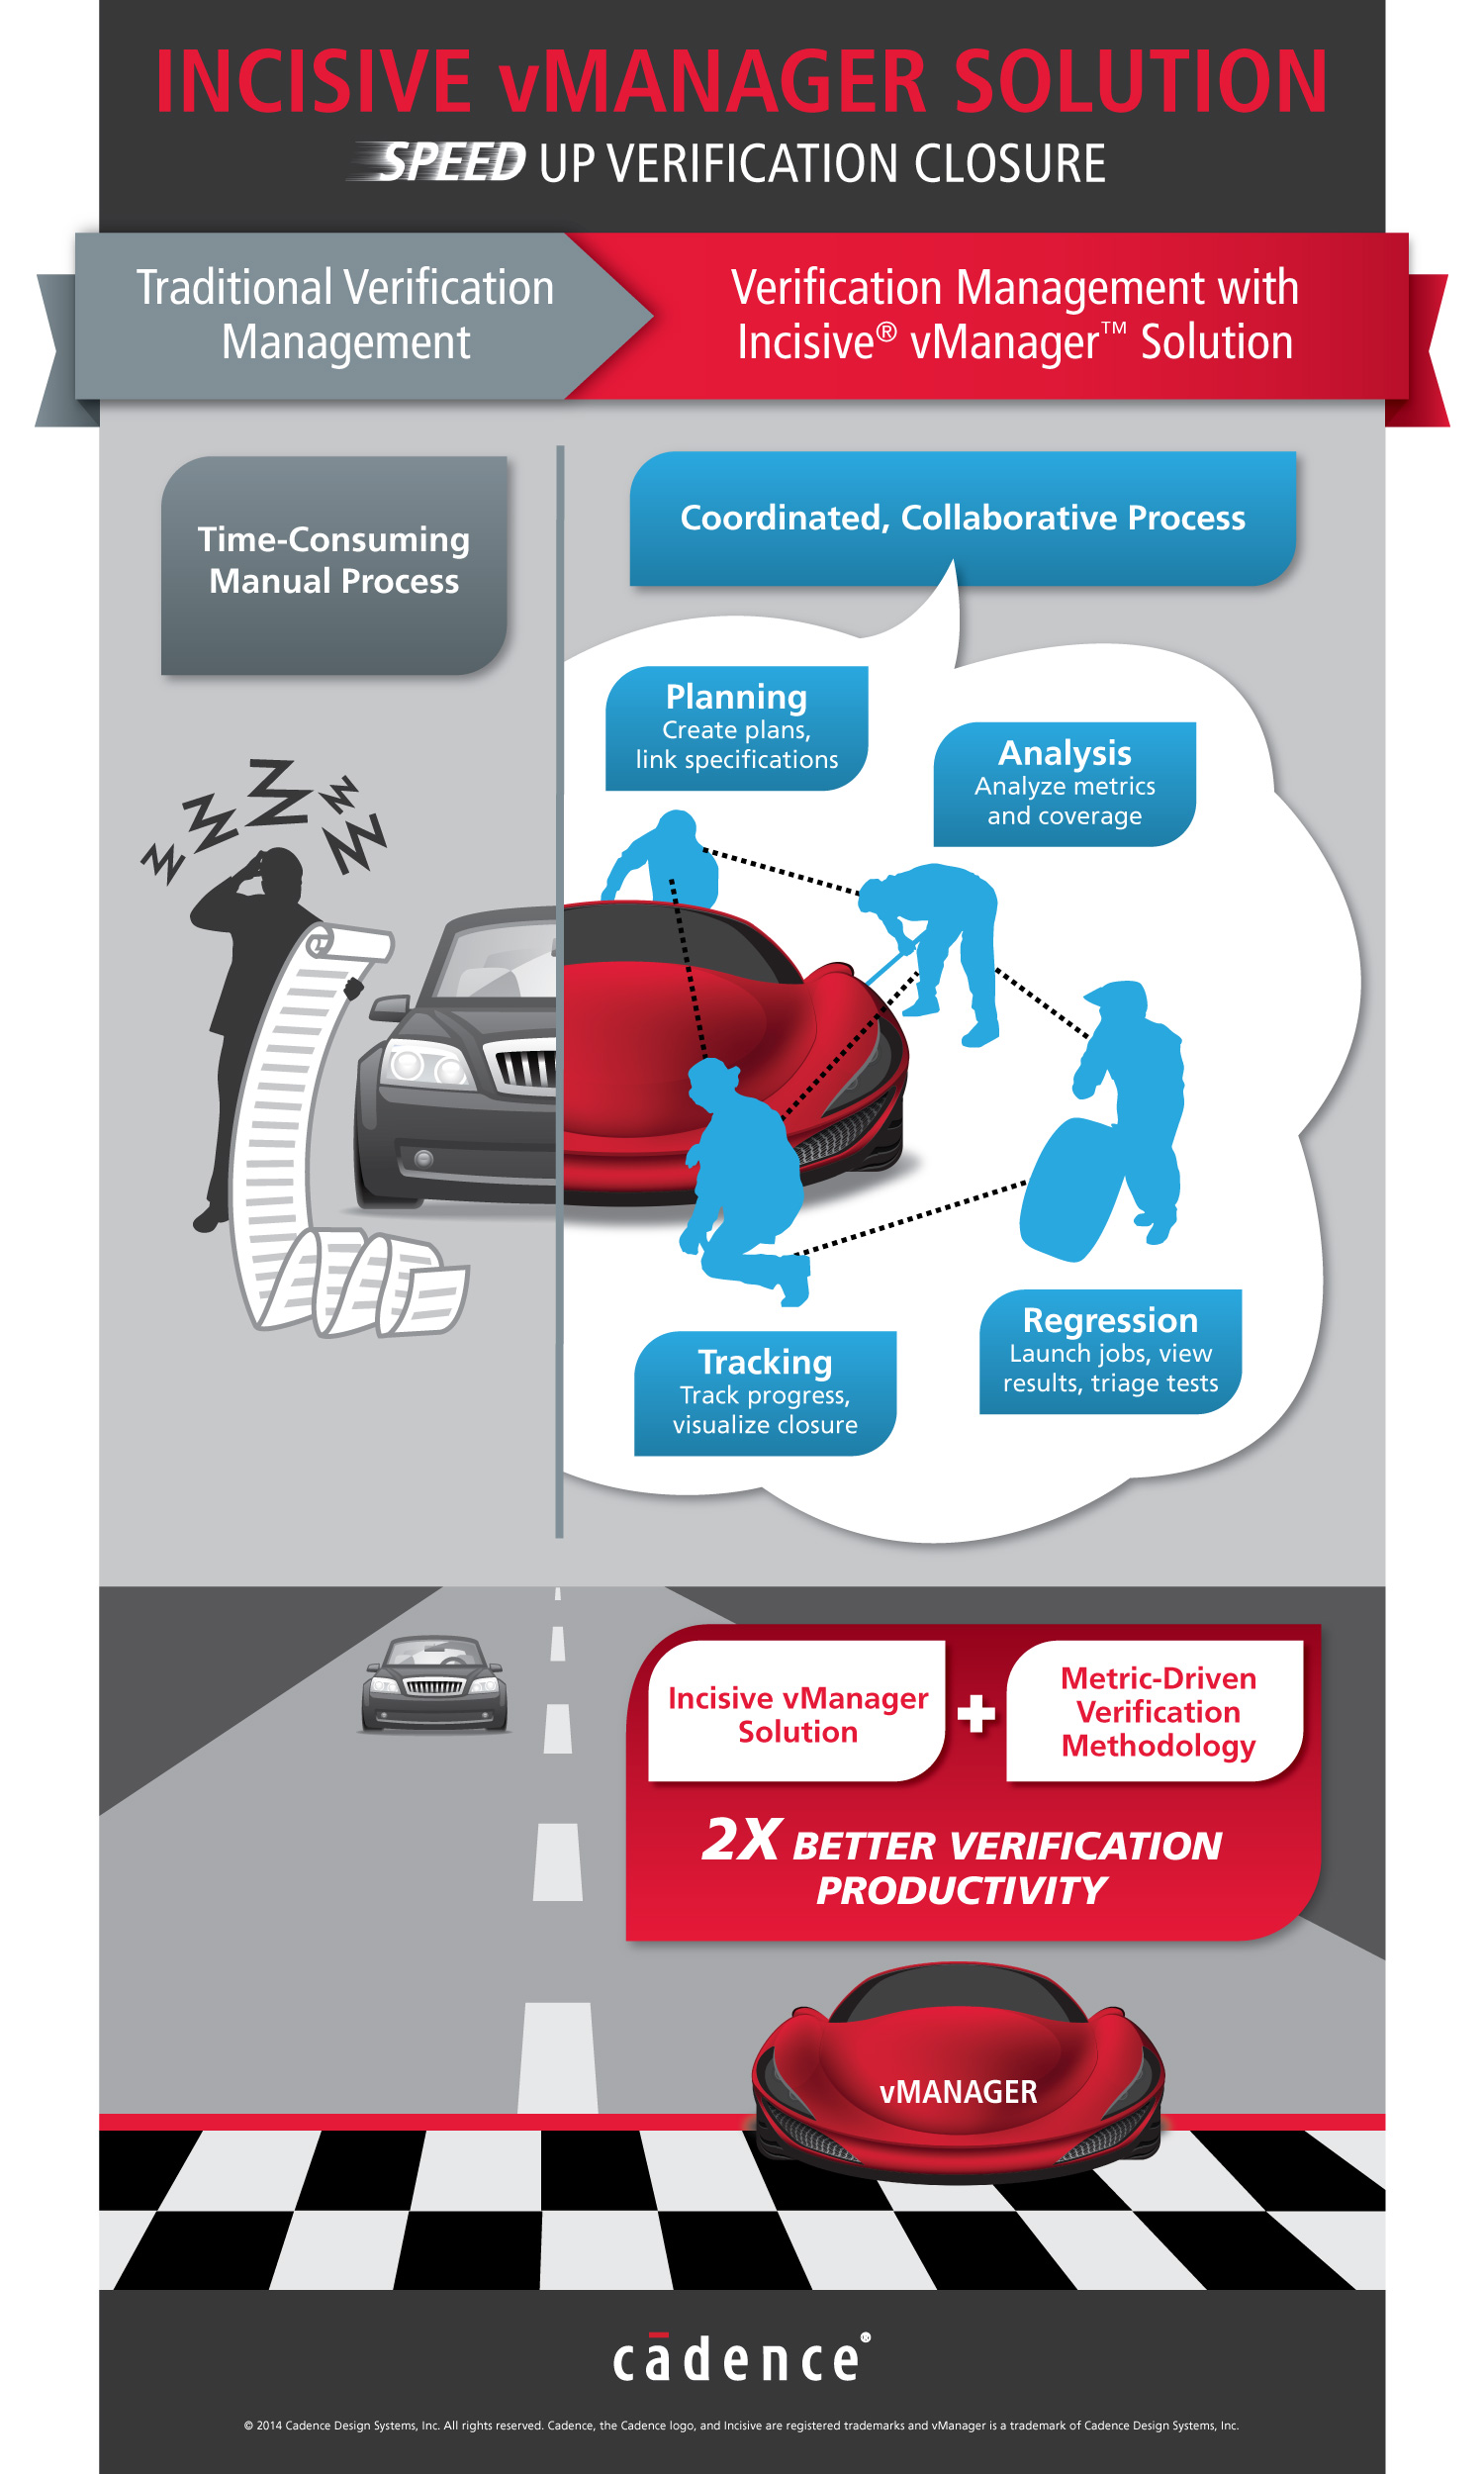 CADENCE REDEFINES VERIFICATION PLANNING AND MANAGEMENT WITH INCISIVE VMANAGER SOLUTION